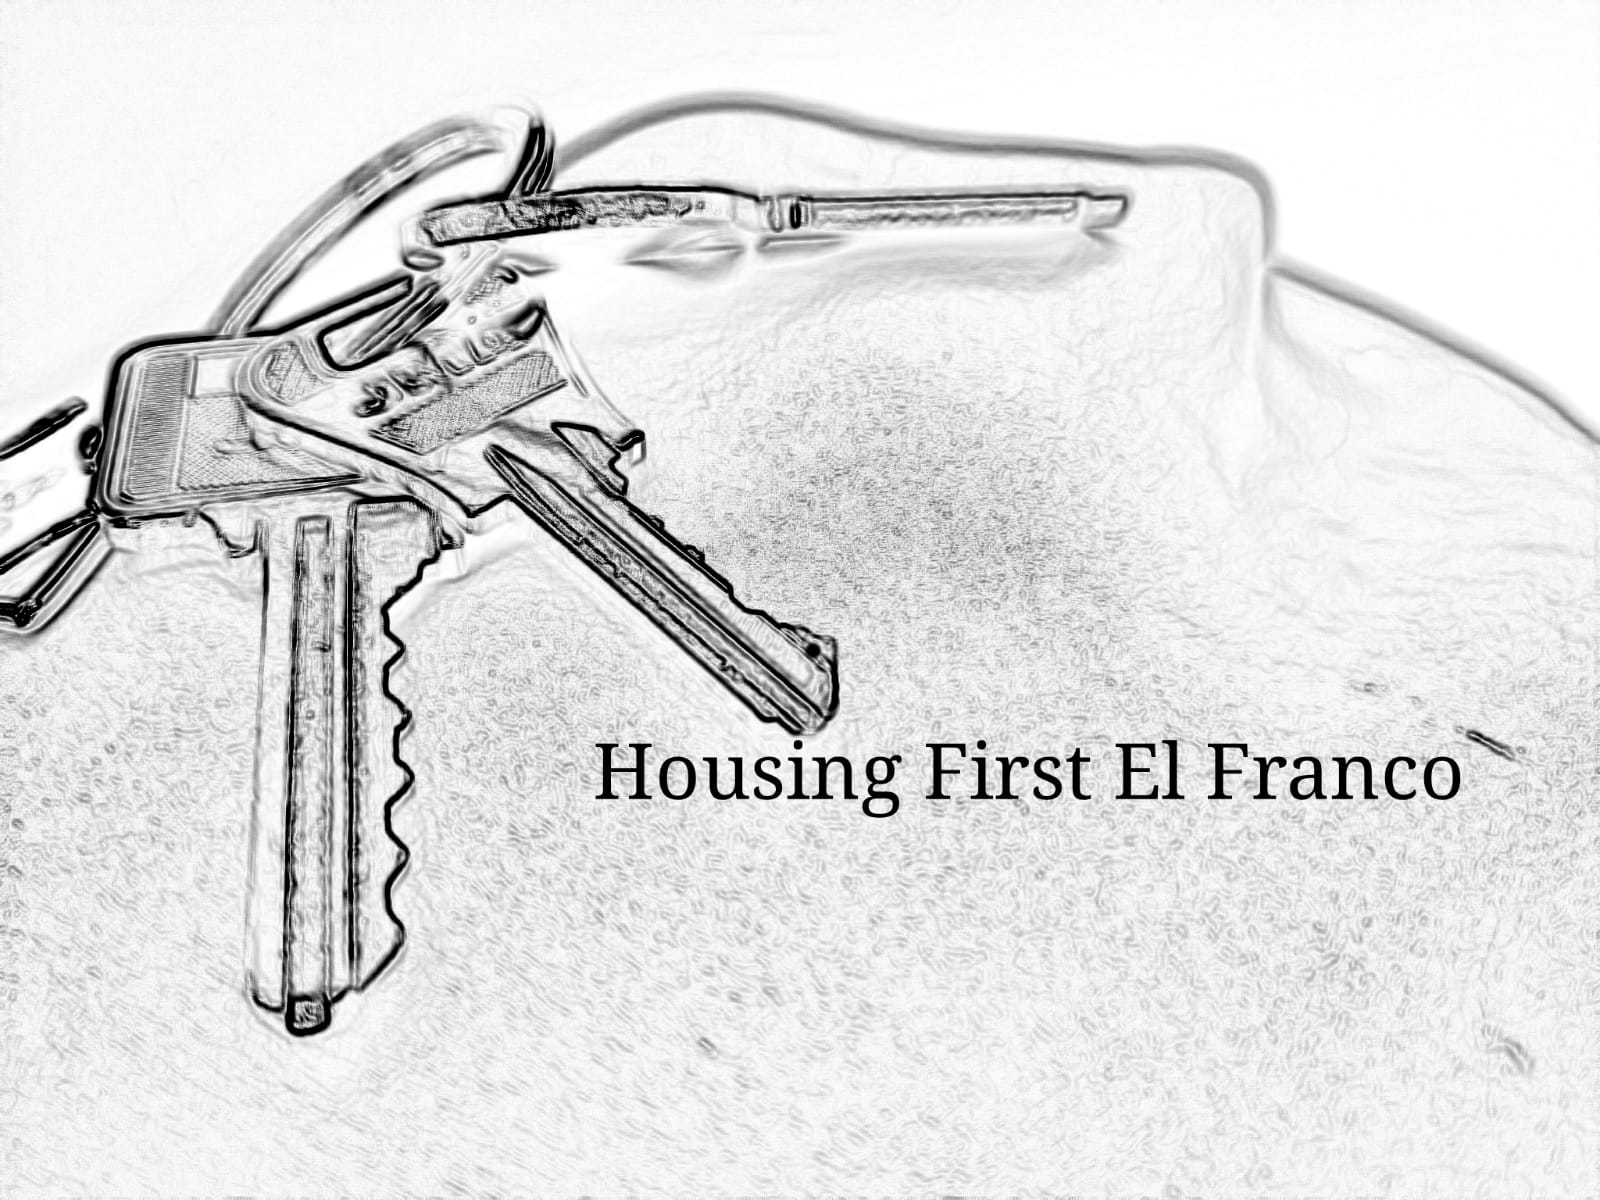 Iniciativa Housing First